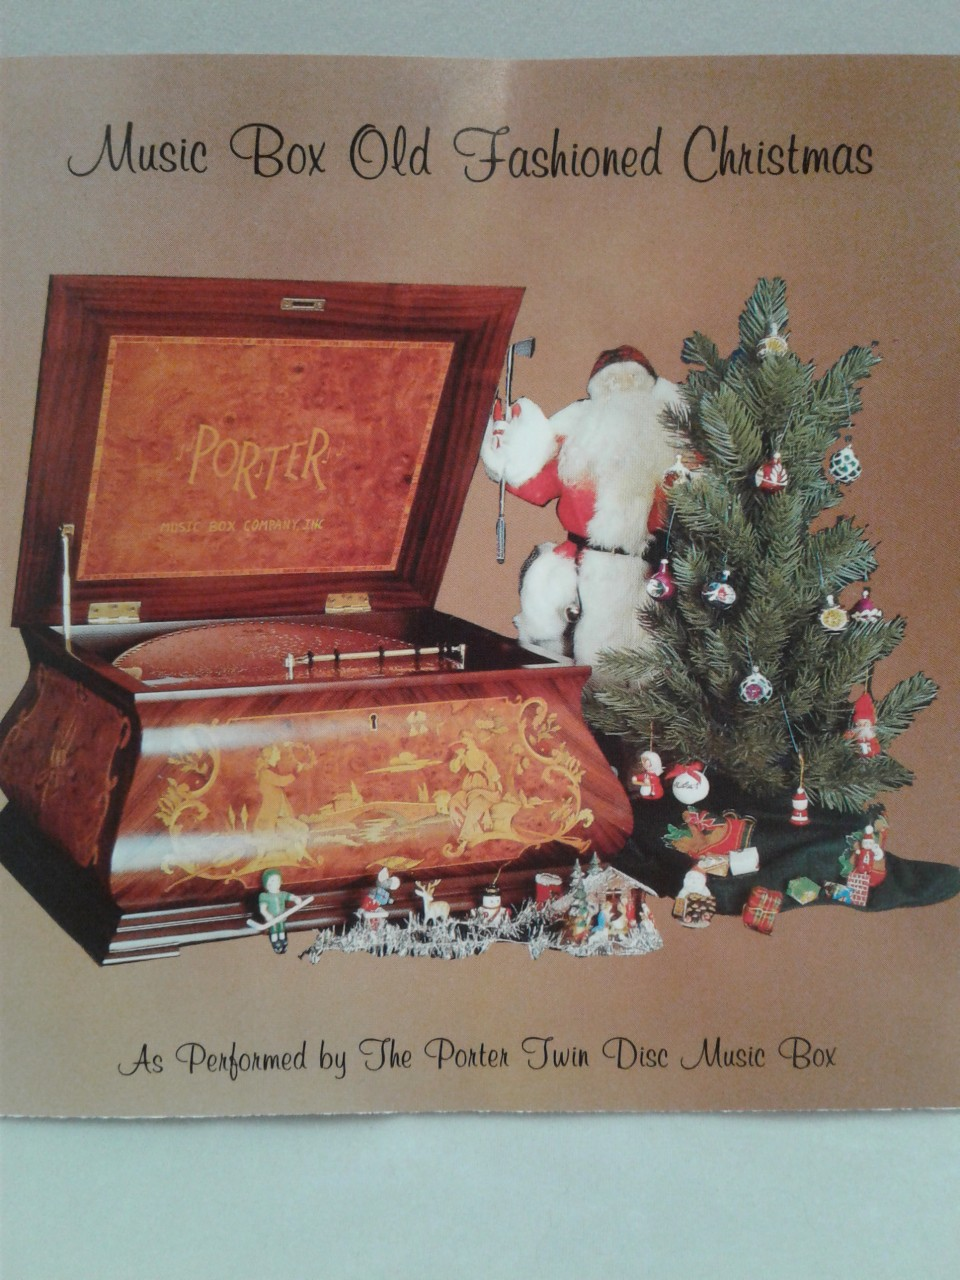 Music Box Old Fashioned Christmas #46 - Porter Music Box Company